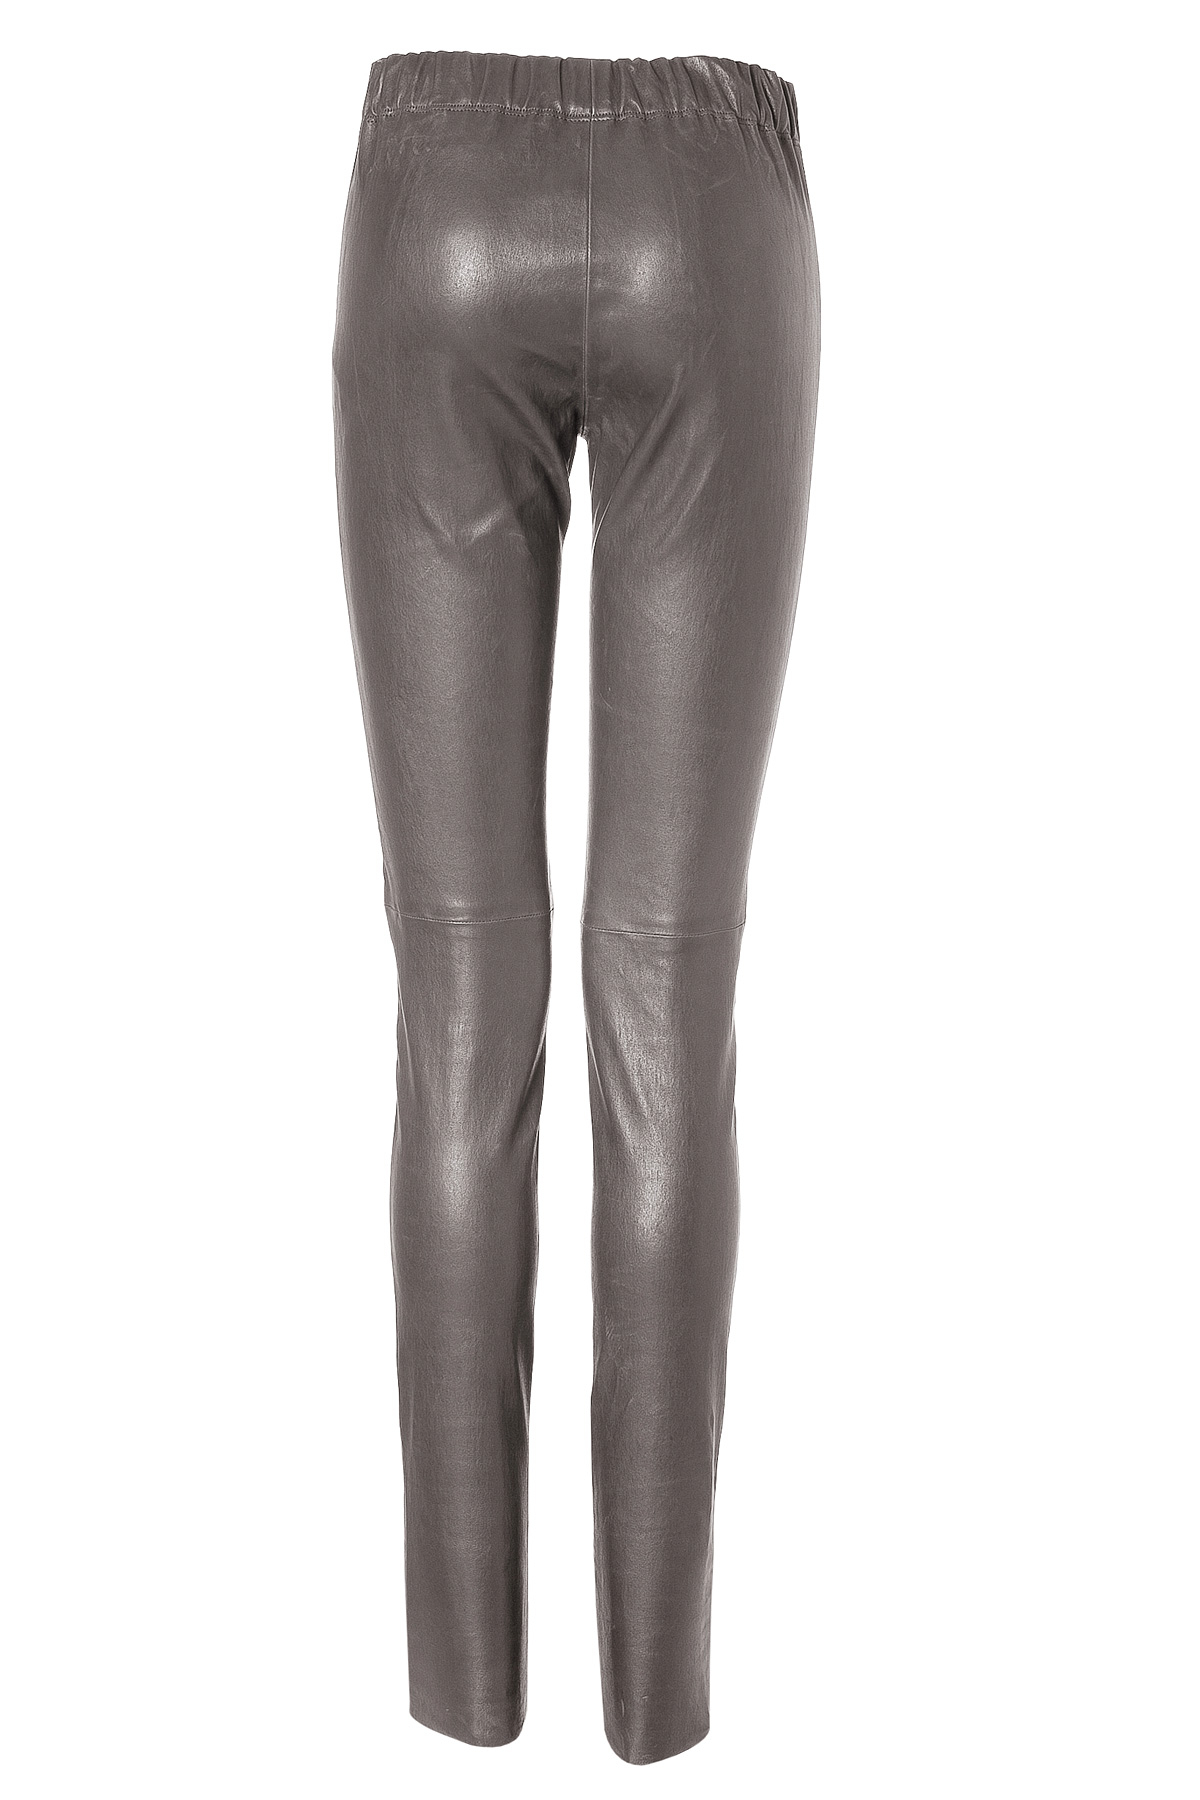 Joseph Leather Leggings in Grey in Gray | Lyst